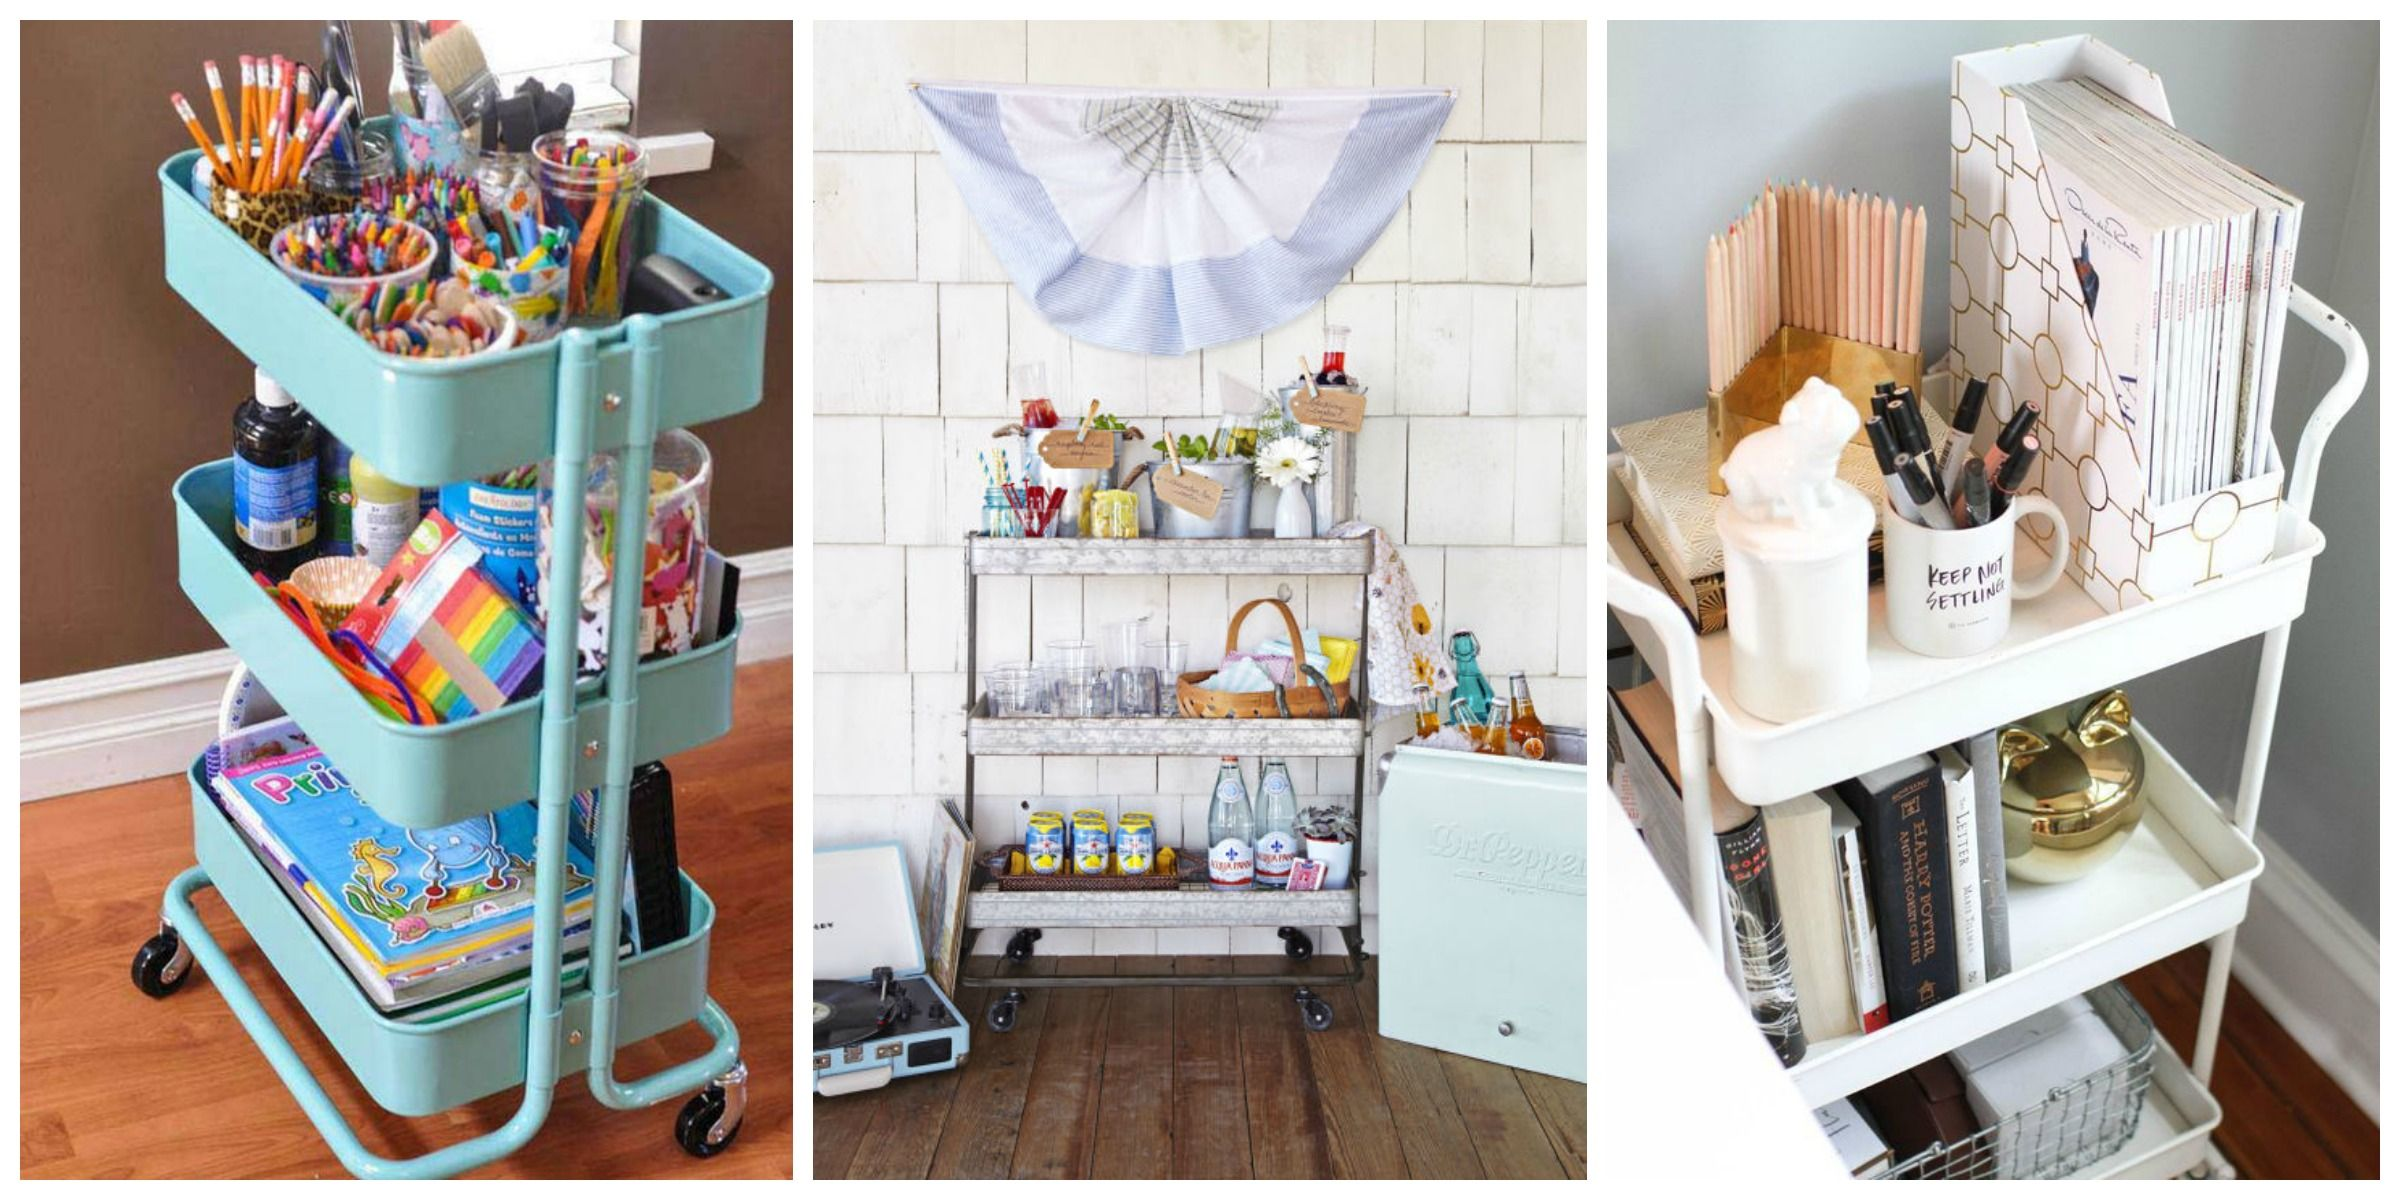 12 Clever Ways To Use Bar Carts That Have Nothing To Do With Alcohol Unique Bar Cart Uses